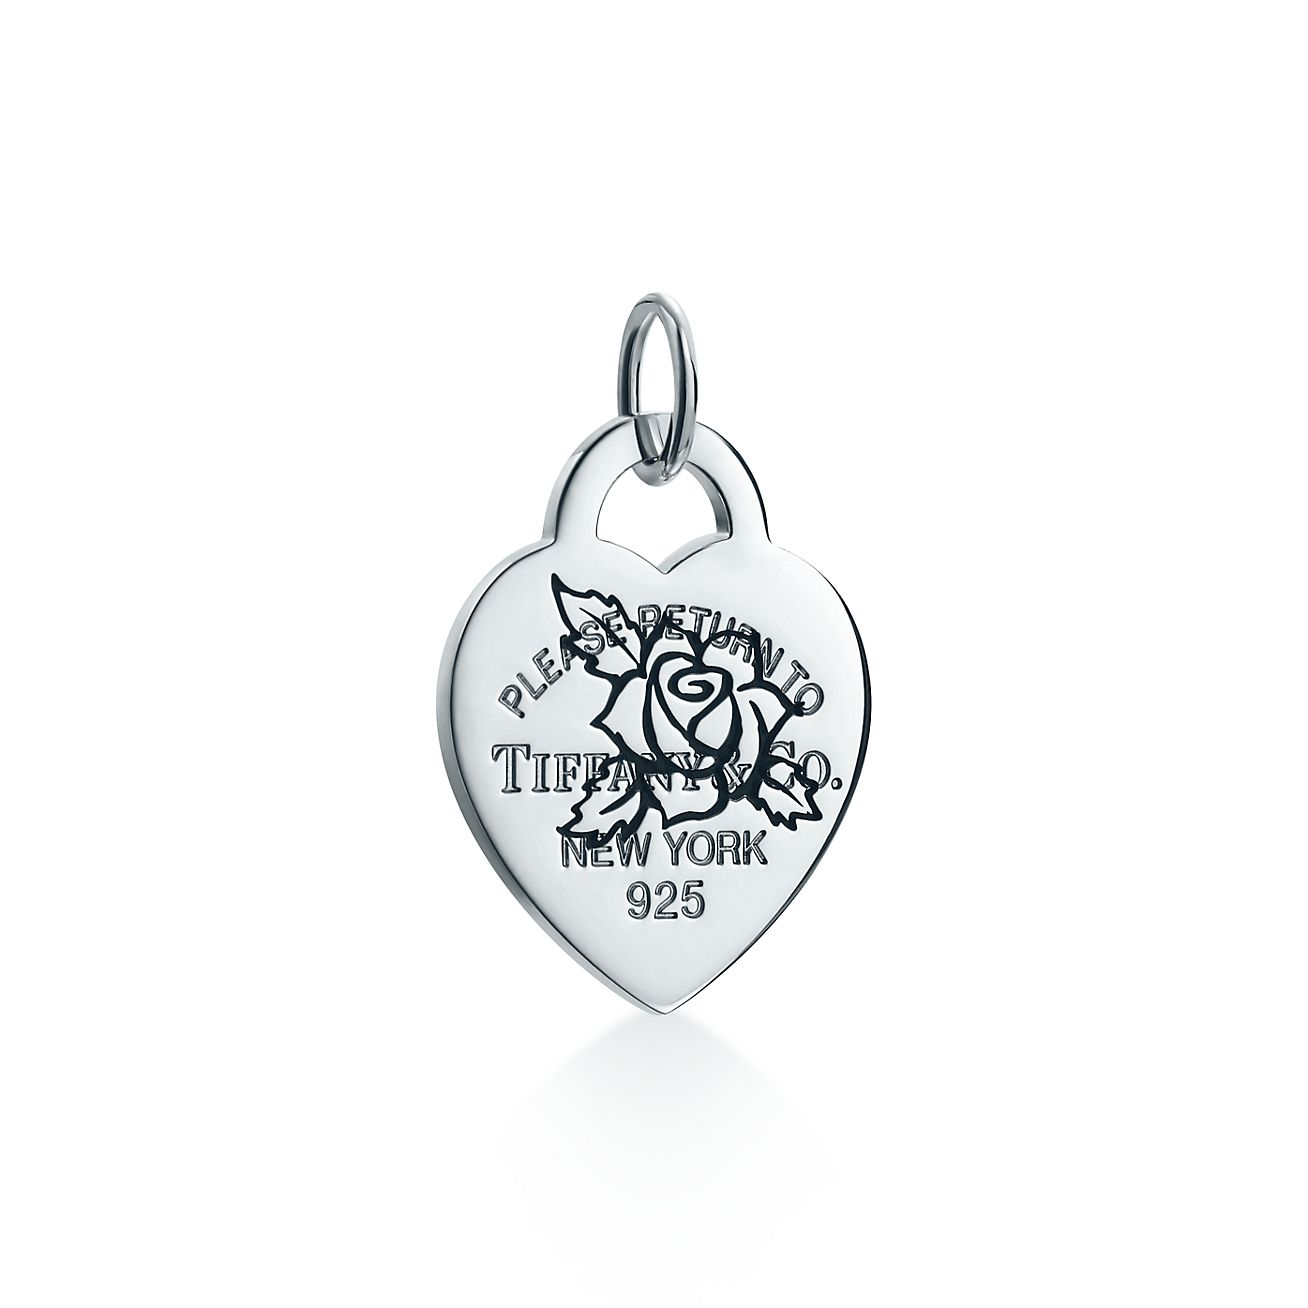 Return to Tiffany heart tag charm in sterling silver, medium - Size None Tiffany & Co.